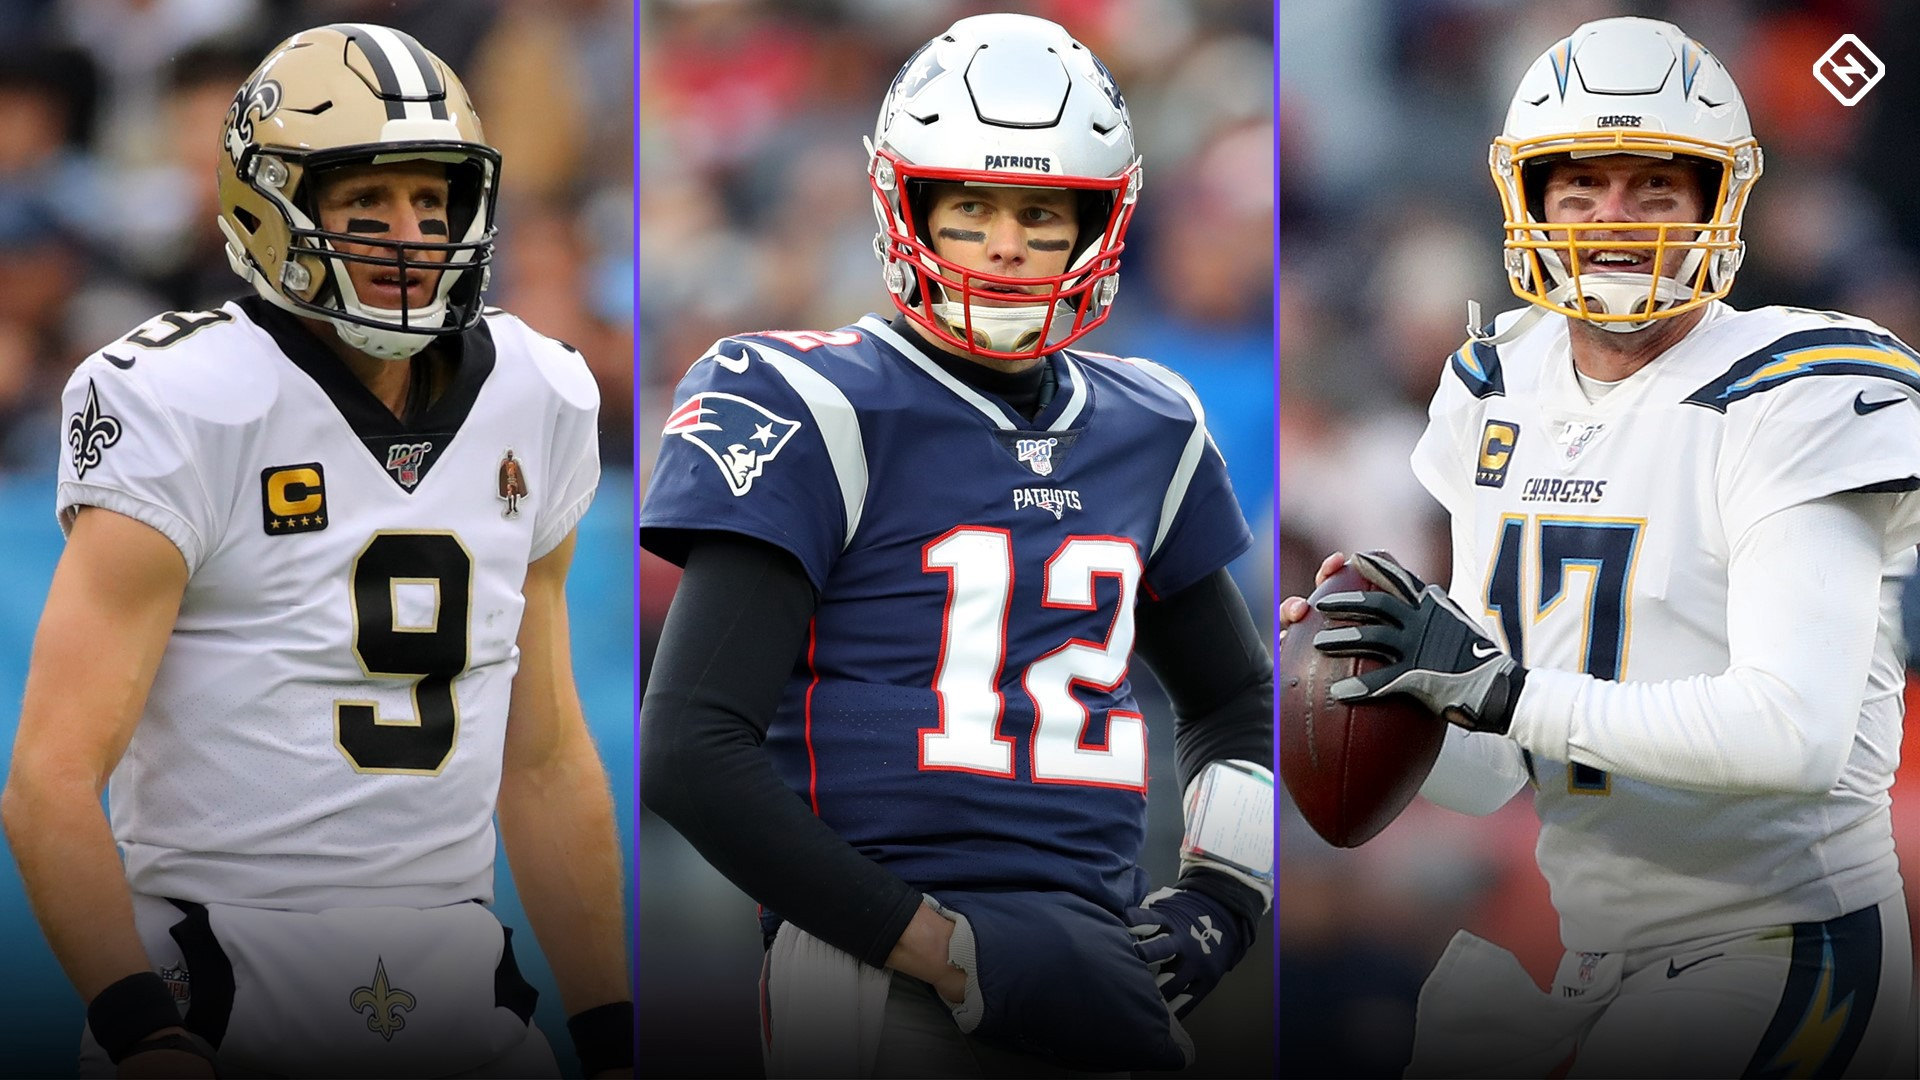 Drew Brees, Tom Brady, and Philip Rivers are all free agents. Will any of them be playing elsewhere on NFL Opening Day 2020?